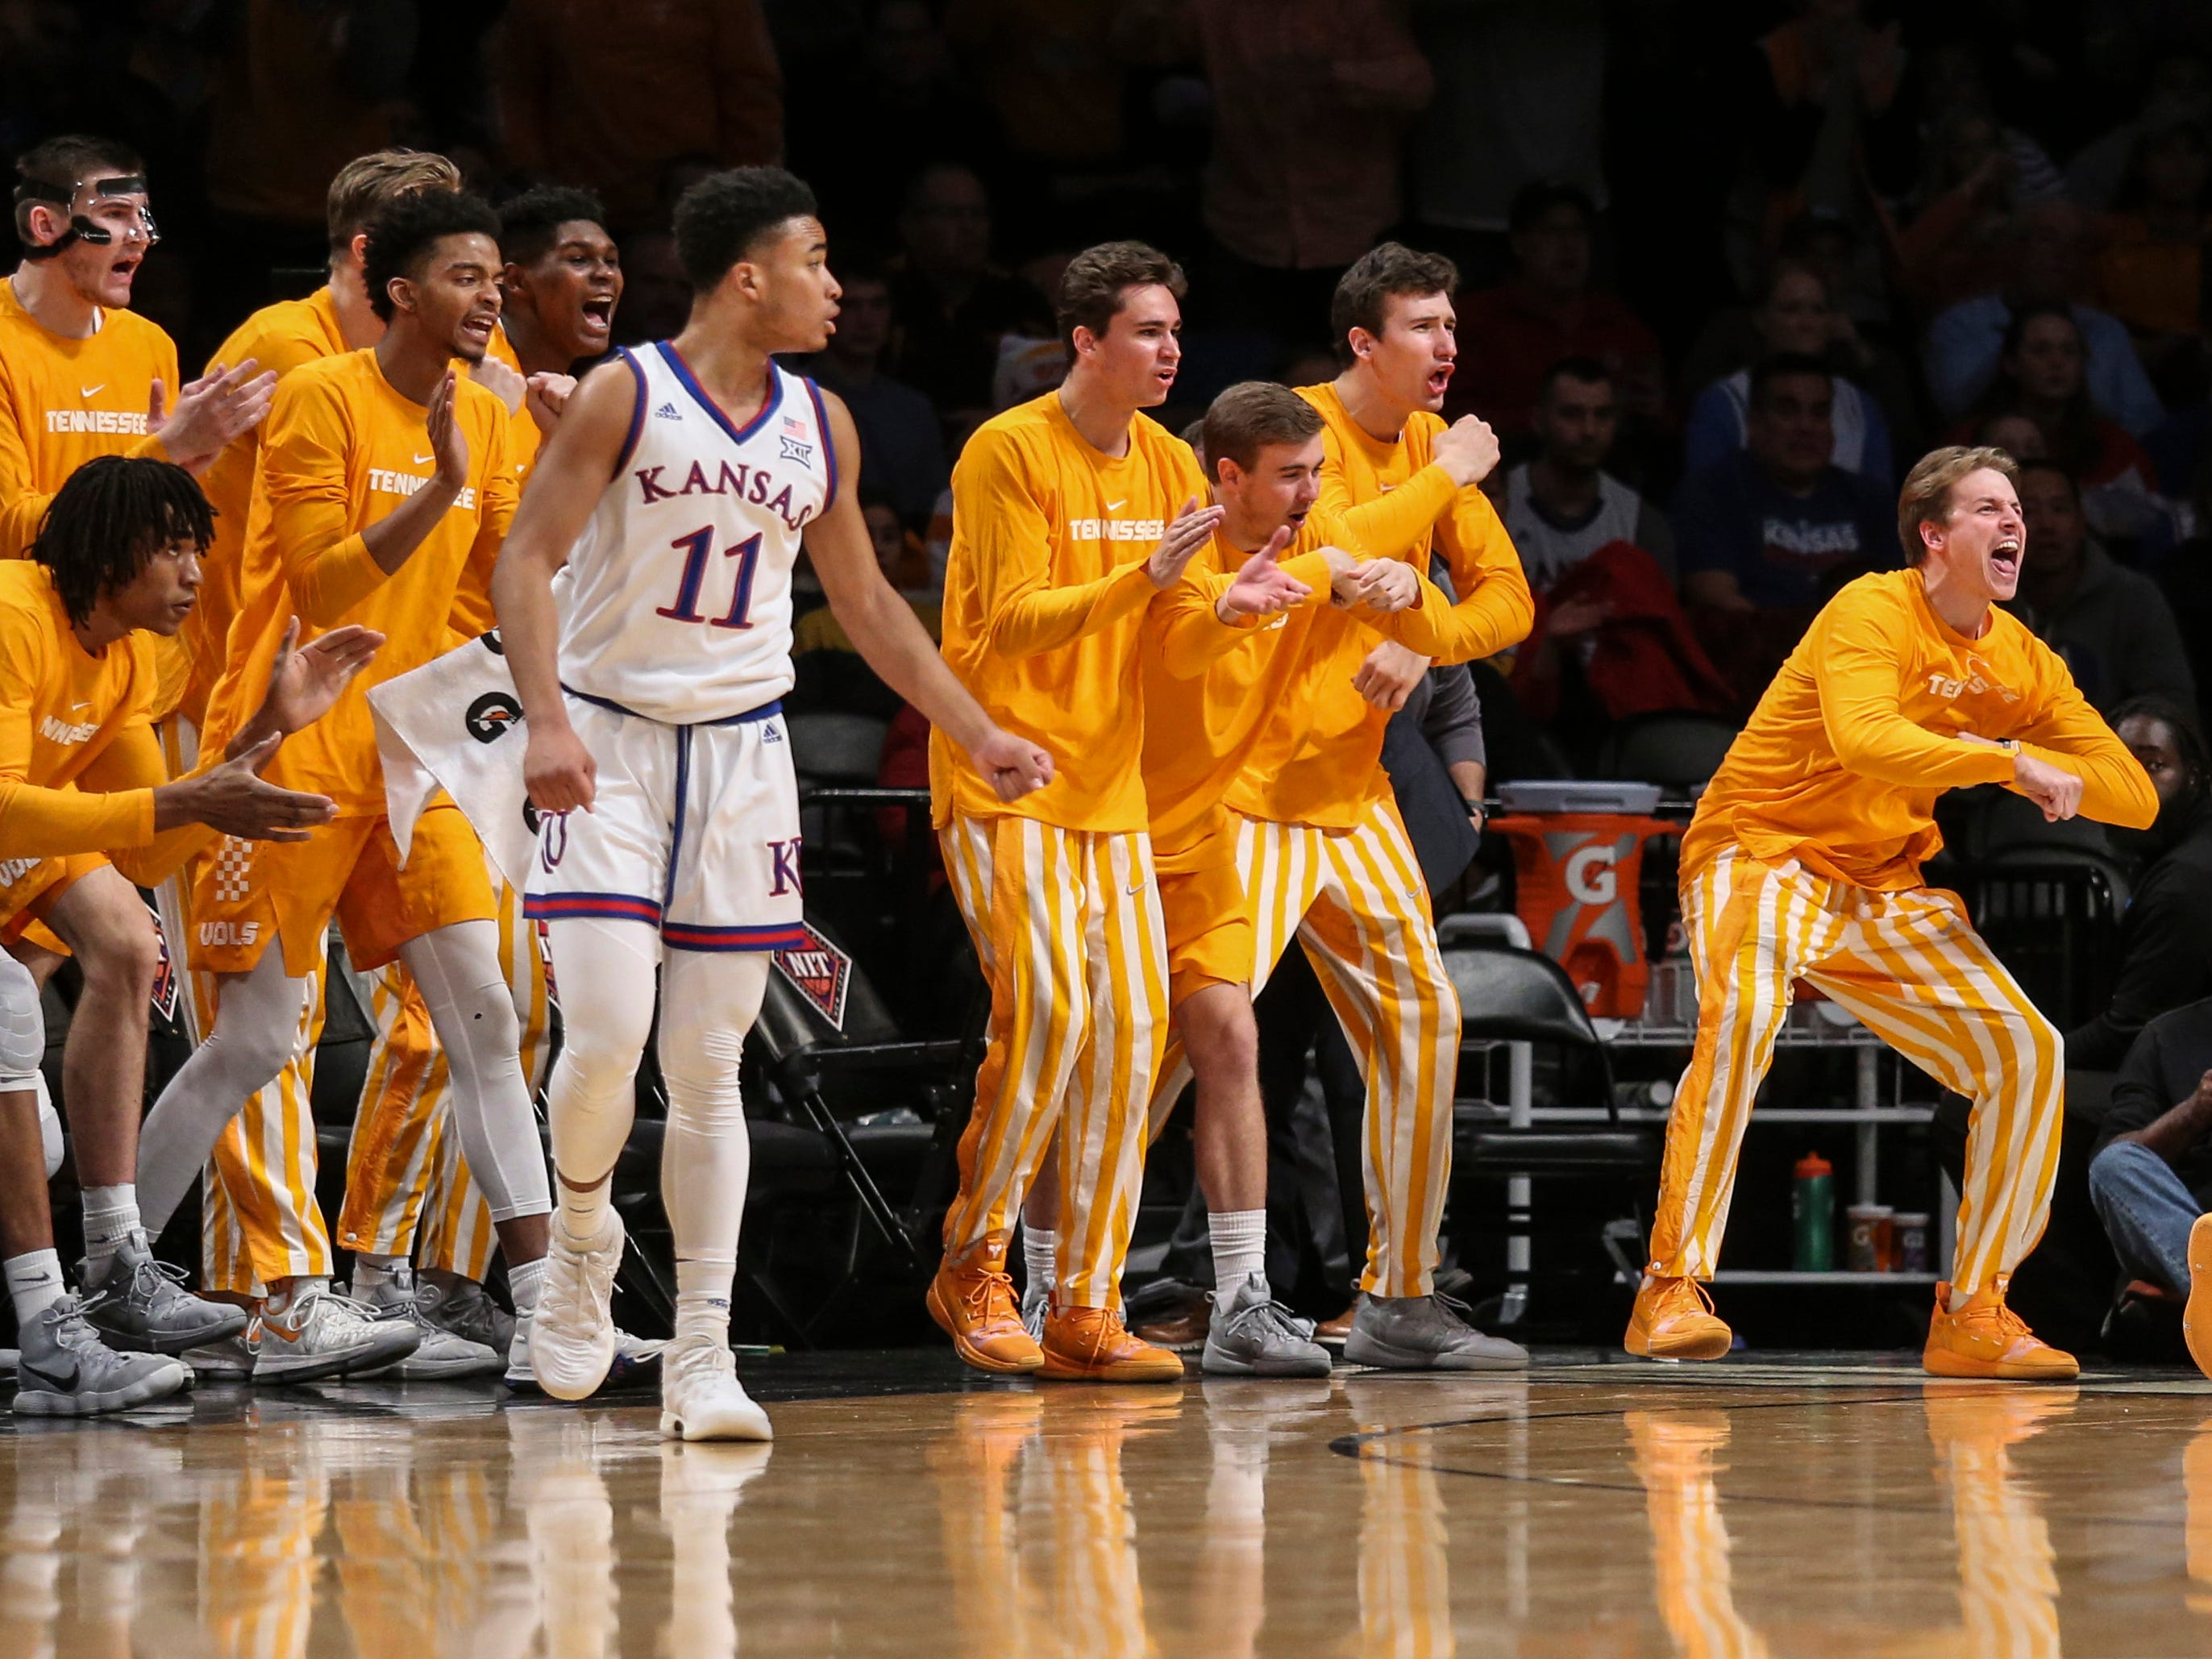 Nov 23, 2018; Brooklyn, NY, USA; The Tennessee Volunteers bench reacts to a call in the first half of championship game of the NIT Season Tipoff against the Kansas Jayhawks at Barclays Center. Mandatory Credit: Wendell Cruz-USA TODAY Sports